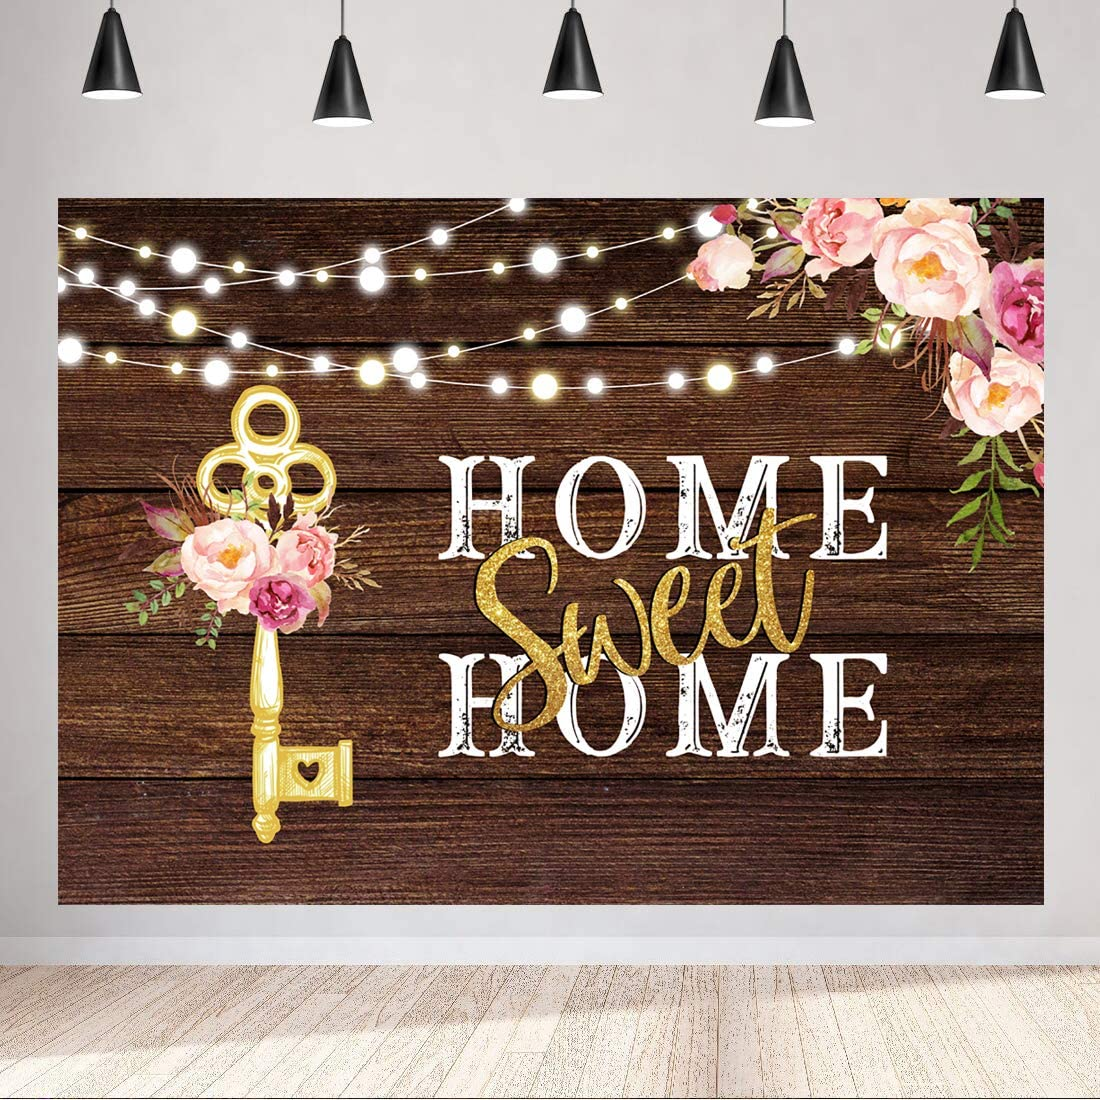 Aperturee Home Sweet Home Key Housewarming Backdrop 7x5ft Rustic Pink Floral Wooden Floor Photography Background Party Decorations Bridal Shower Wedding Photo Booth Props Cake Table Supplies Banner